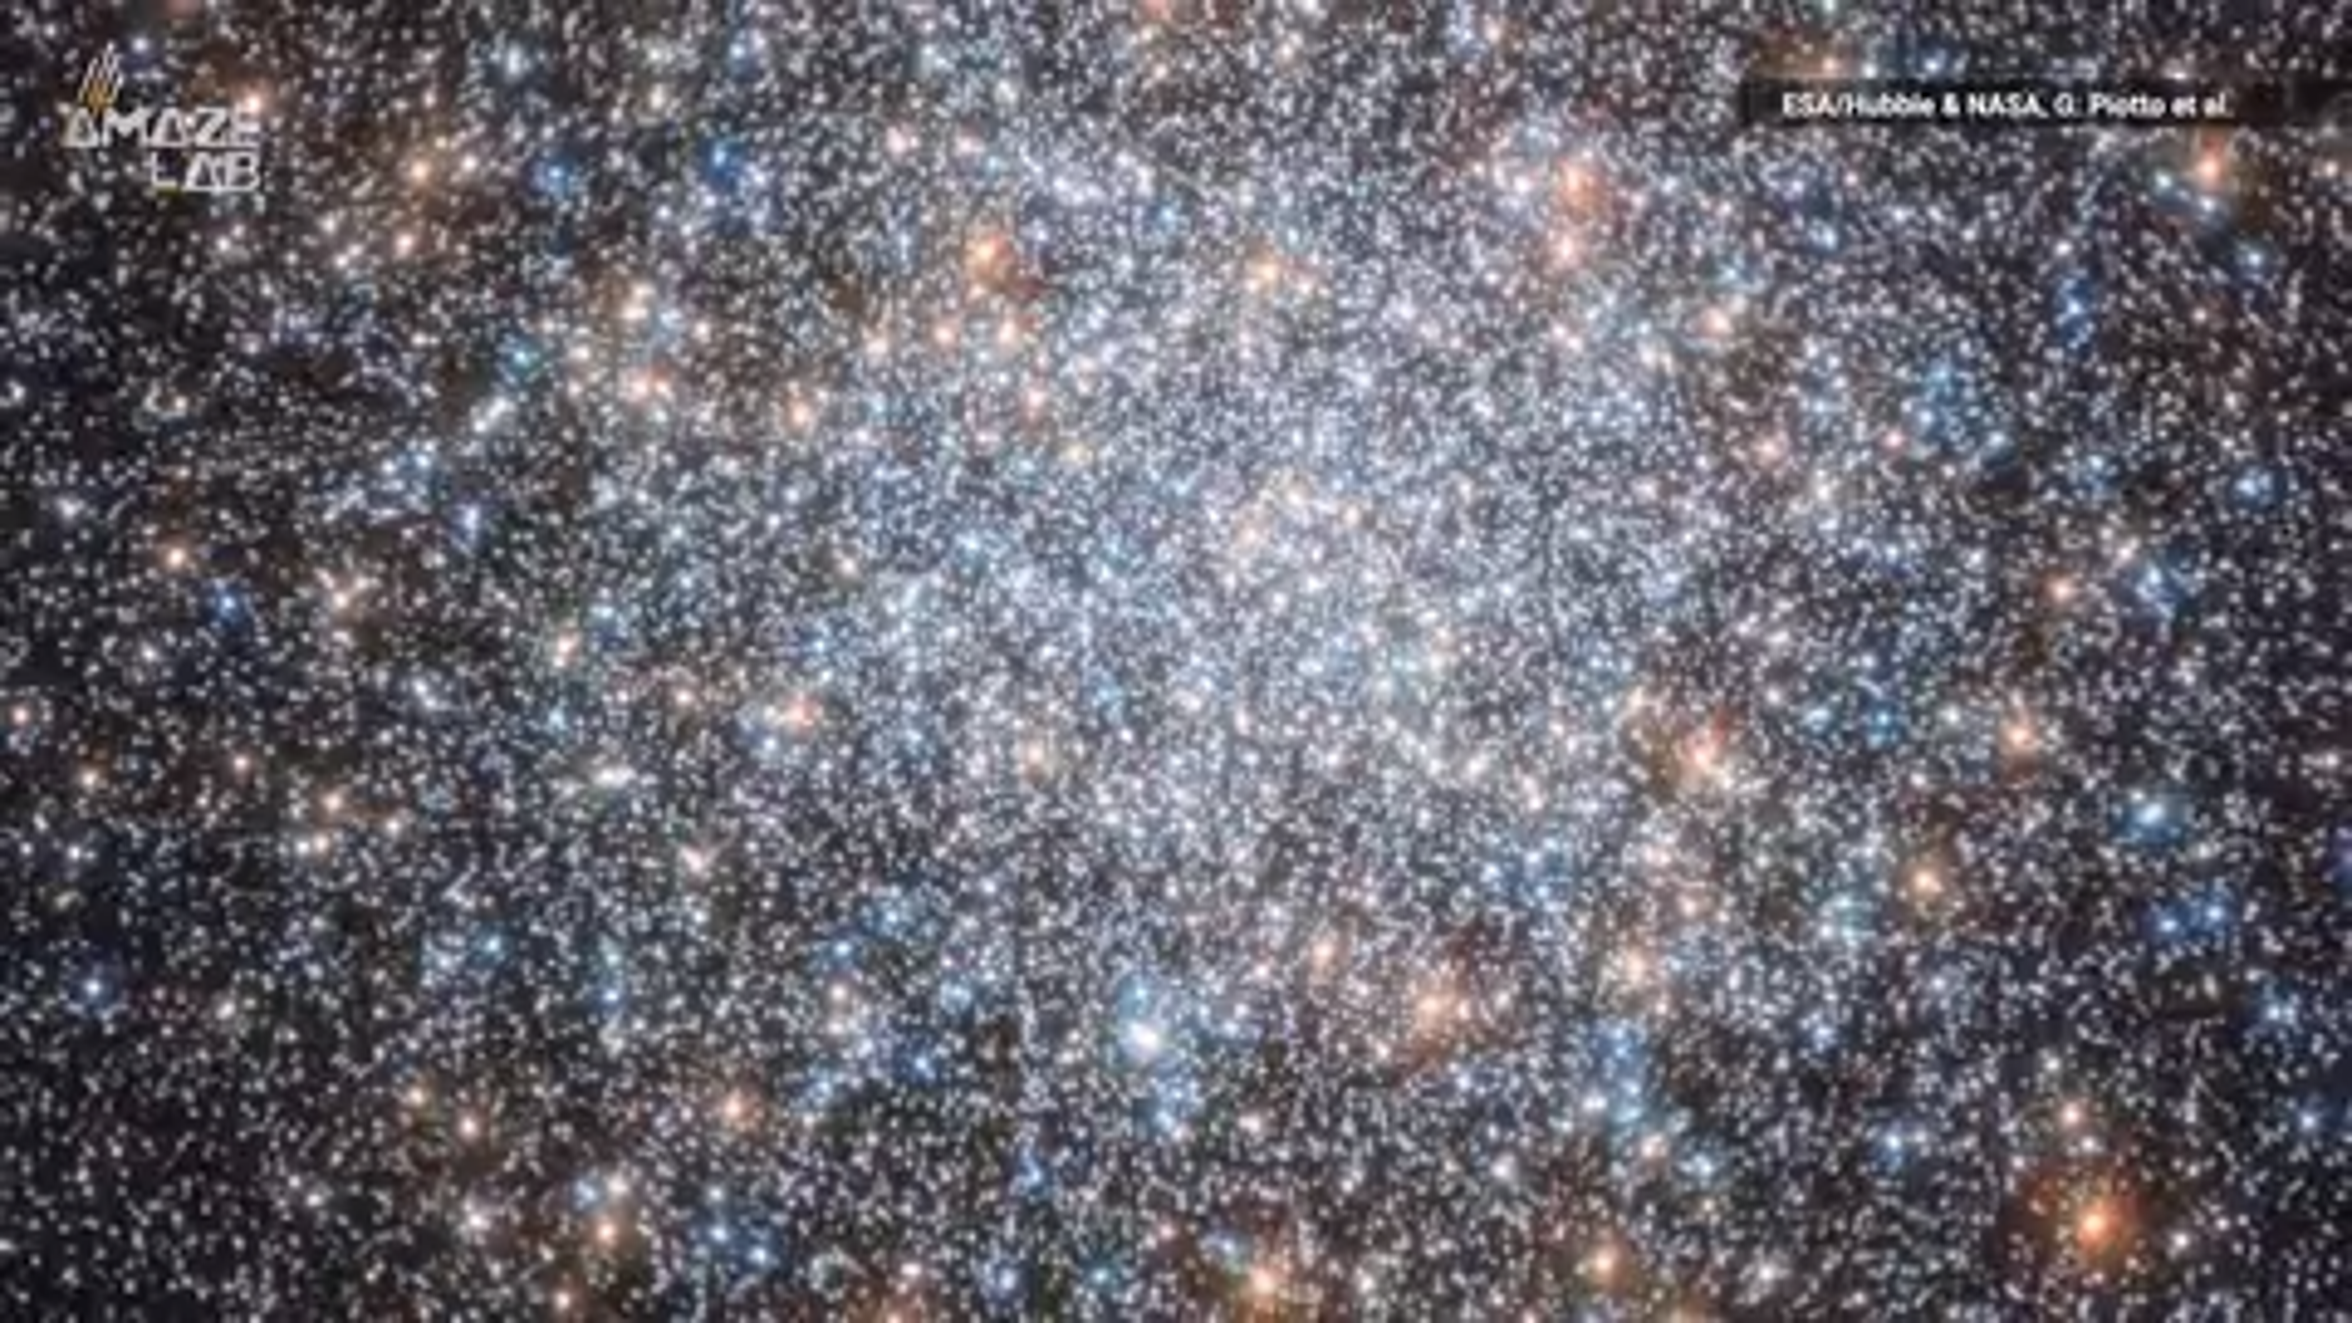 NASA's Hubble Space Telescope just captured a stunning look at one of the largest and brightest globular clusters ever discovered.